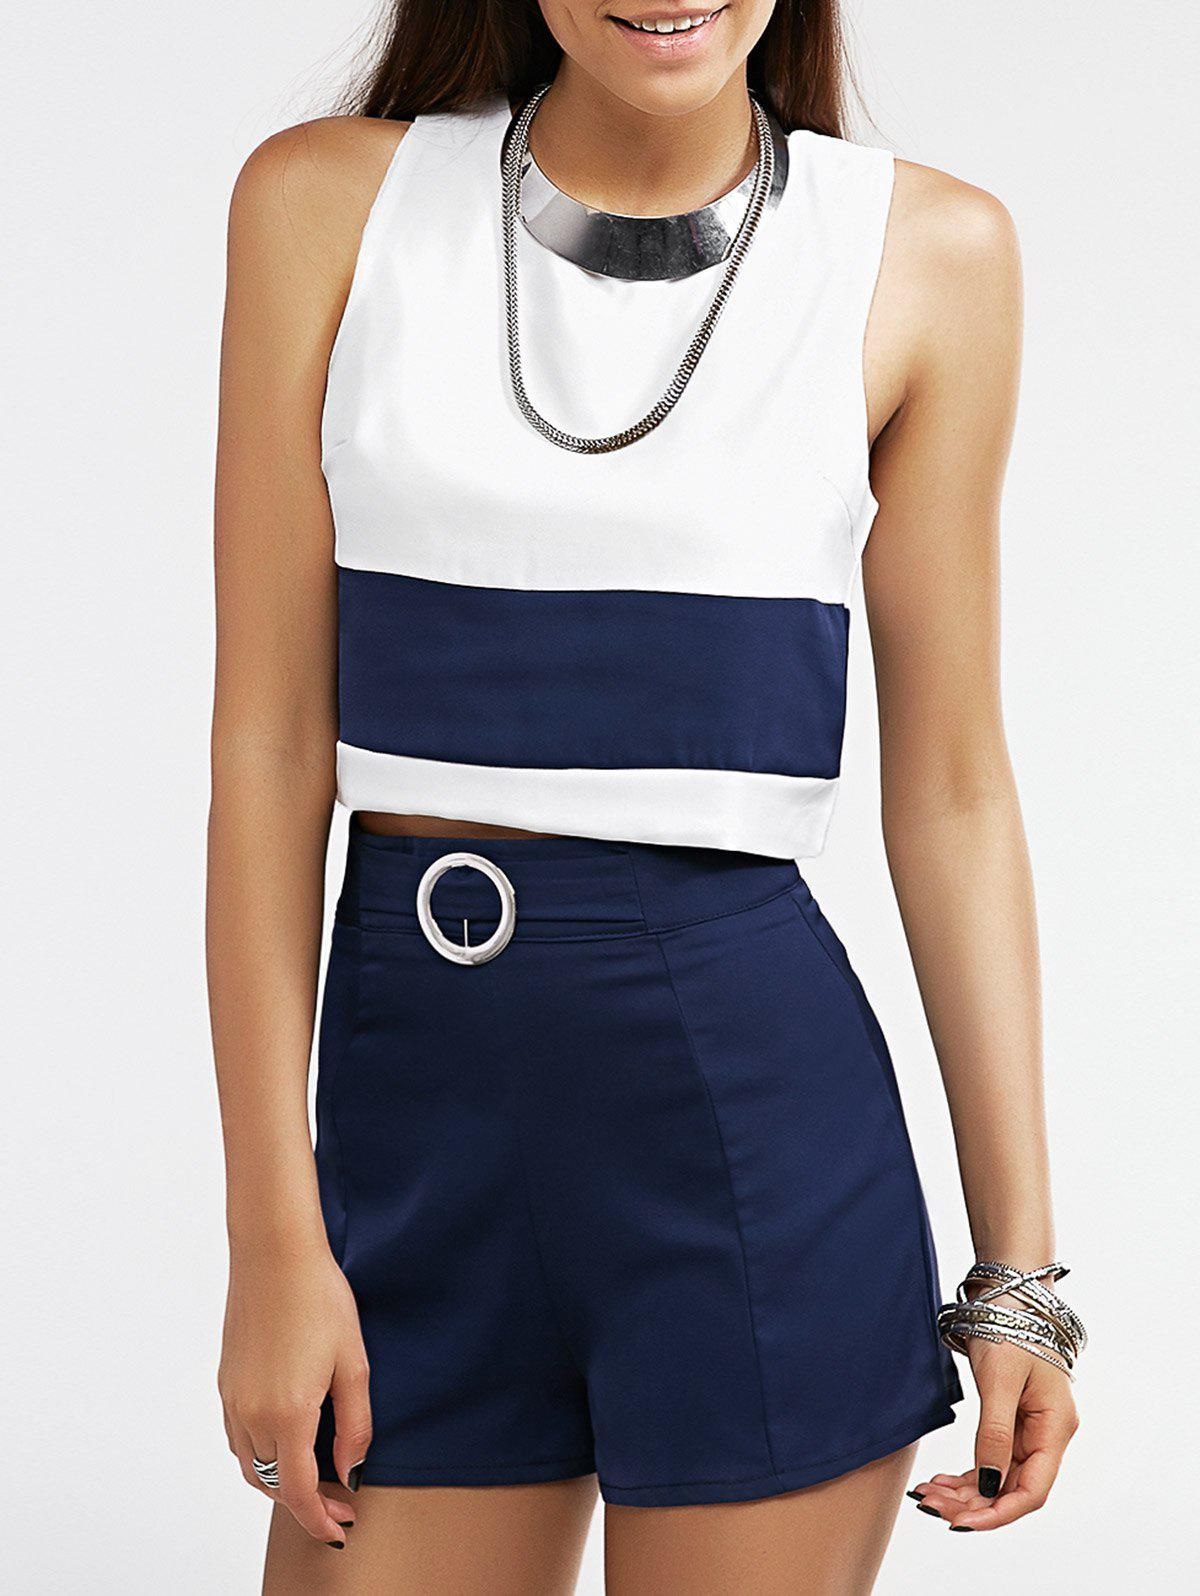 Casual Color Block Tank Top and Shorts Women's Twinset